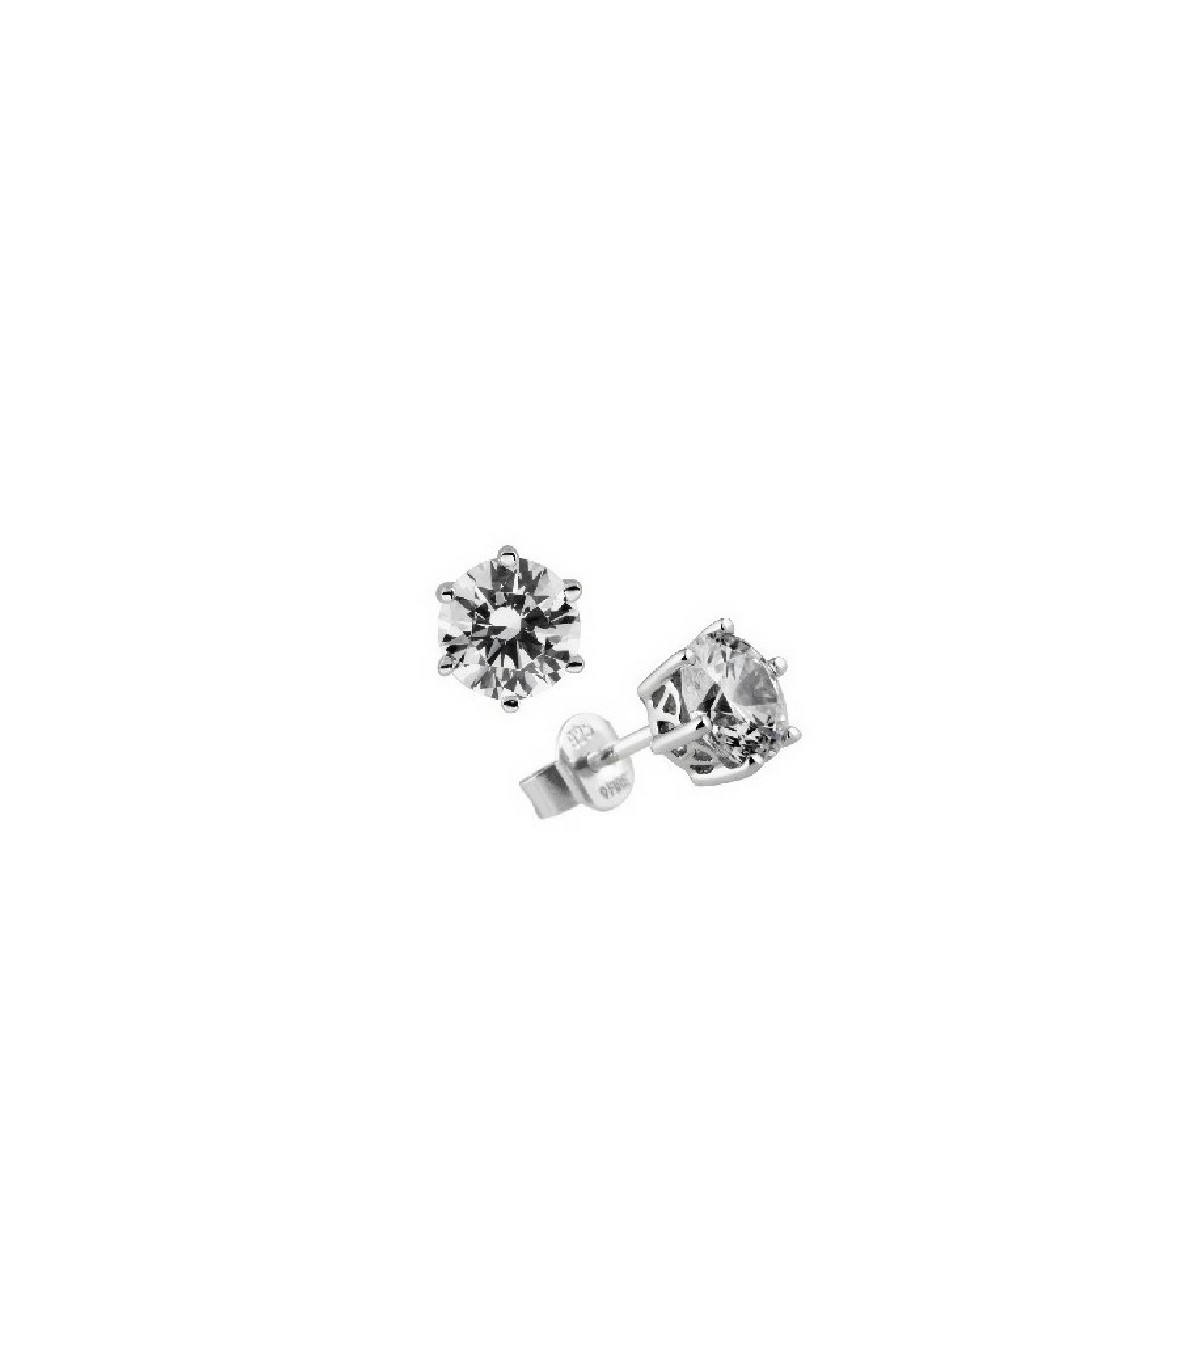 5b4ef07cdc4b PENDIENTE DIAMONFIRE CIRCONITA 5 MM